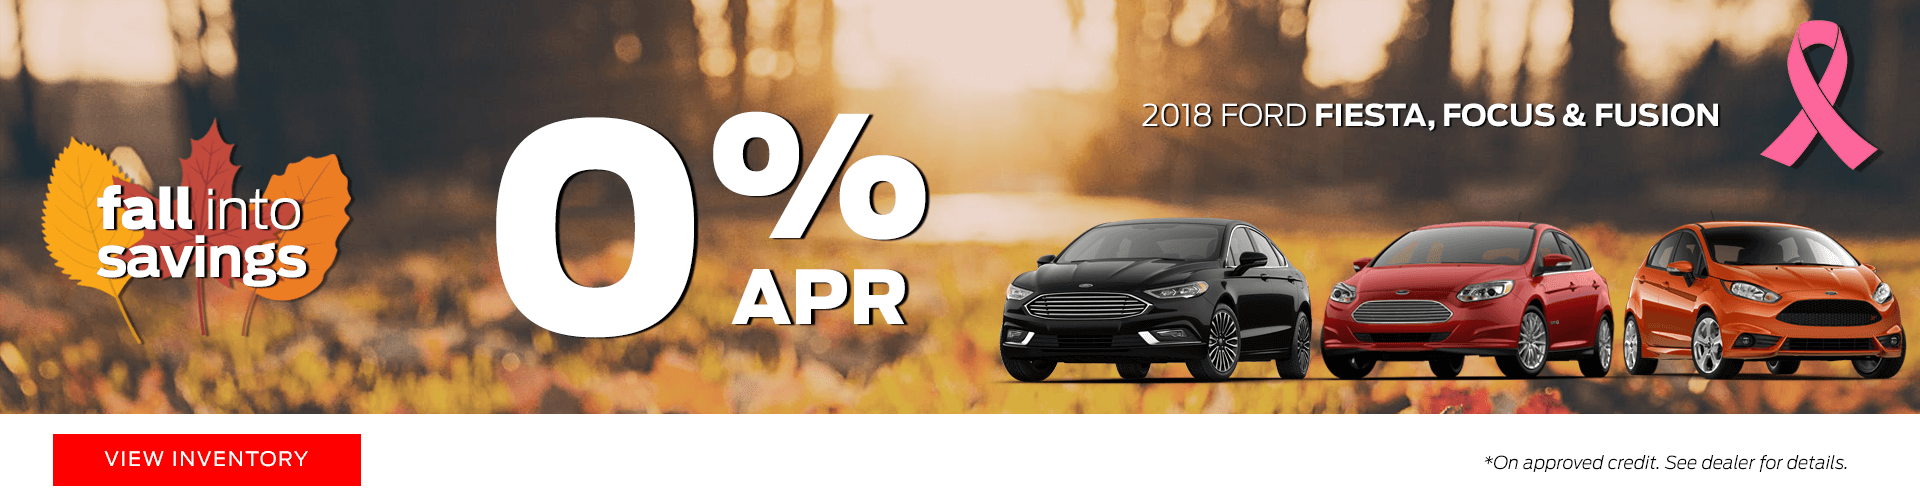 Special offer on 2018 Ford Fiesta 2018 Ford Fiesta, Focus & Fusion Special Offer